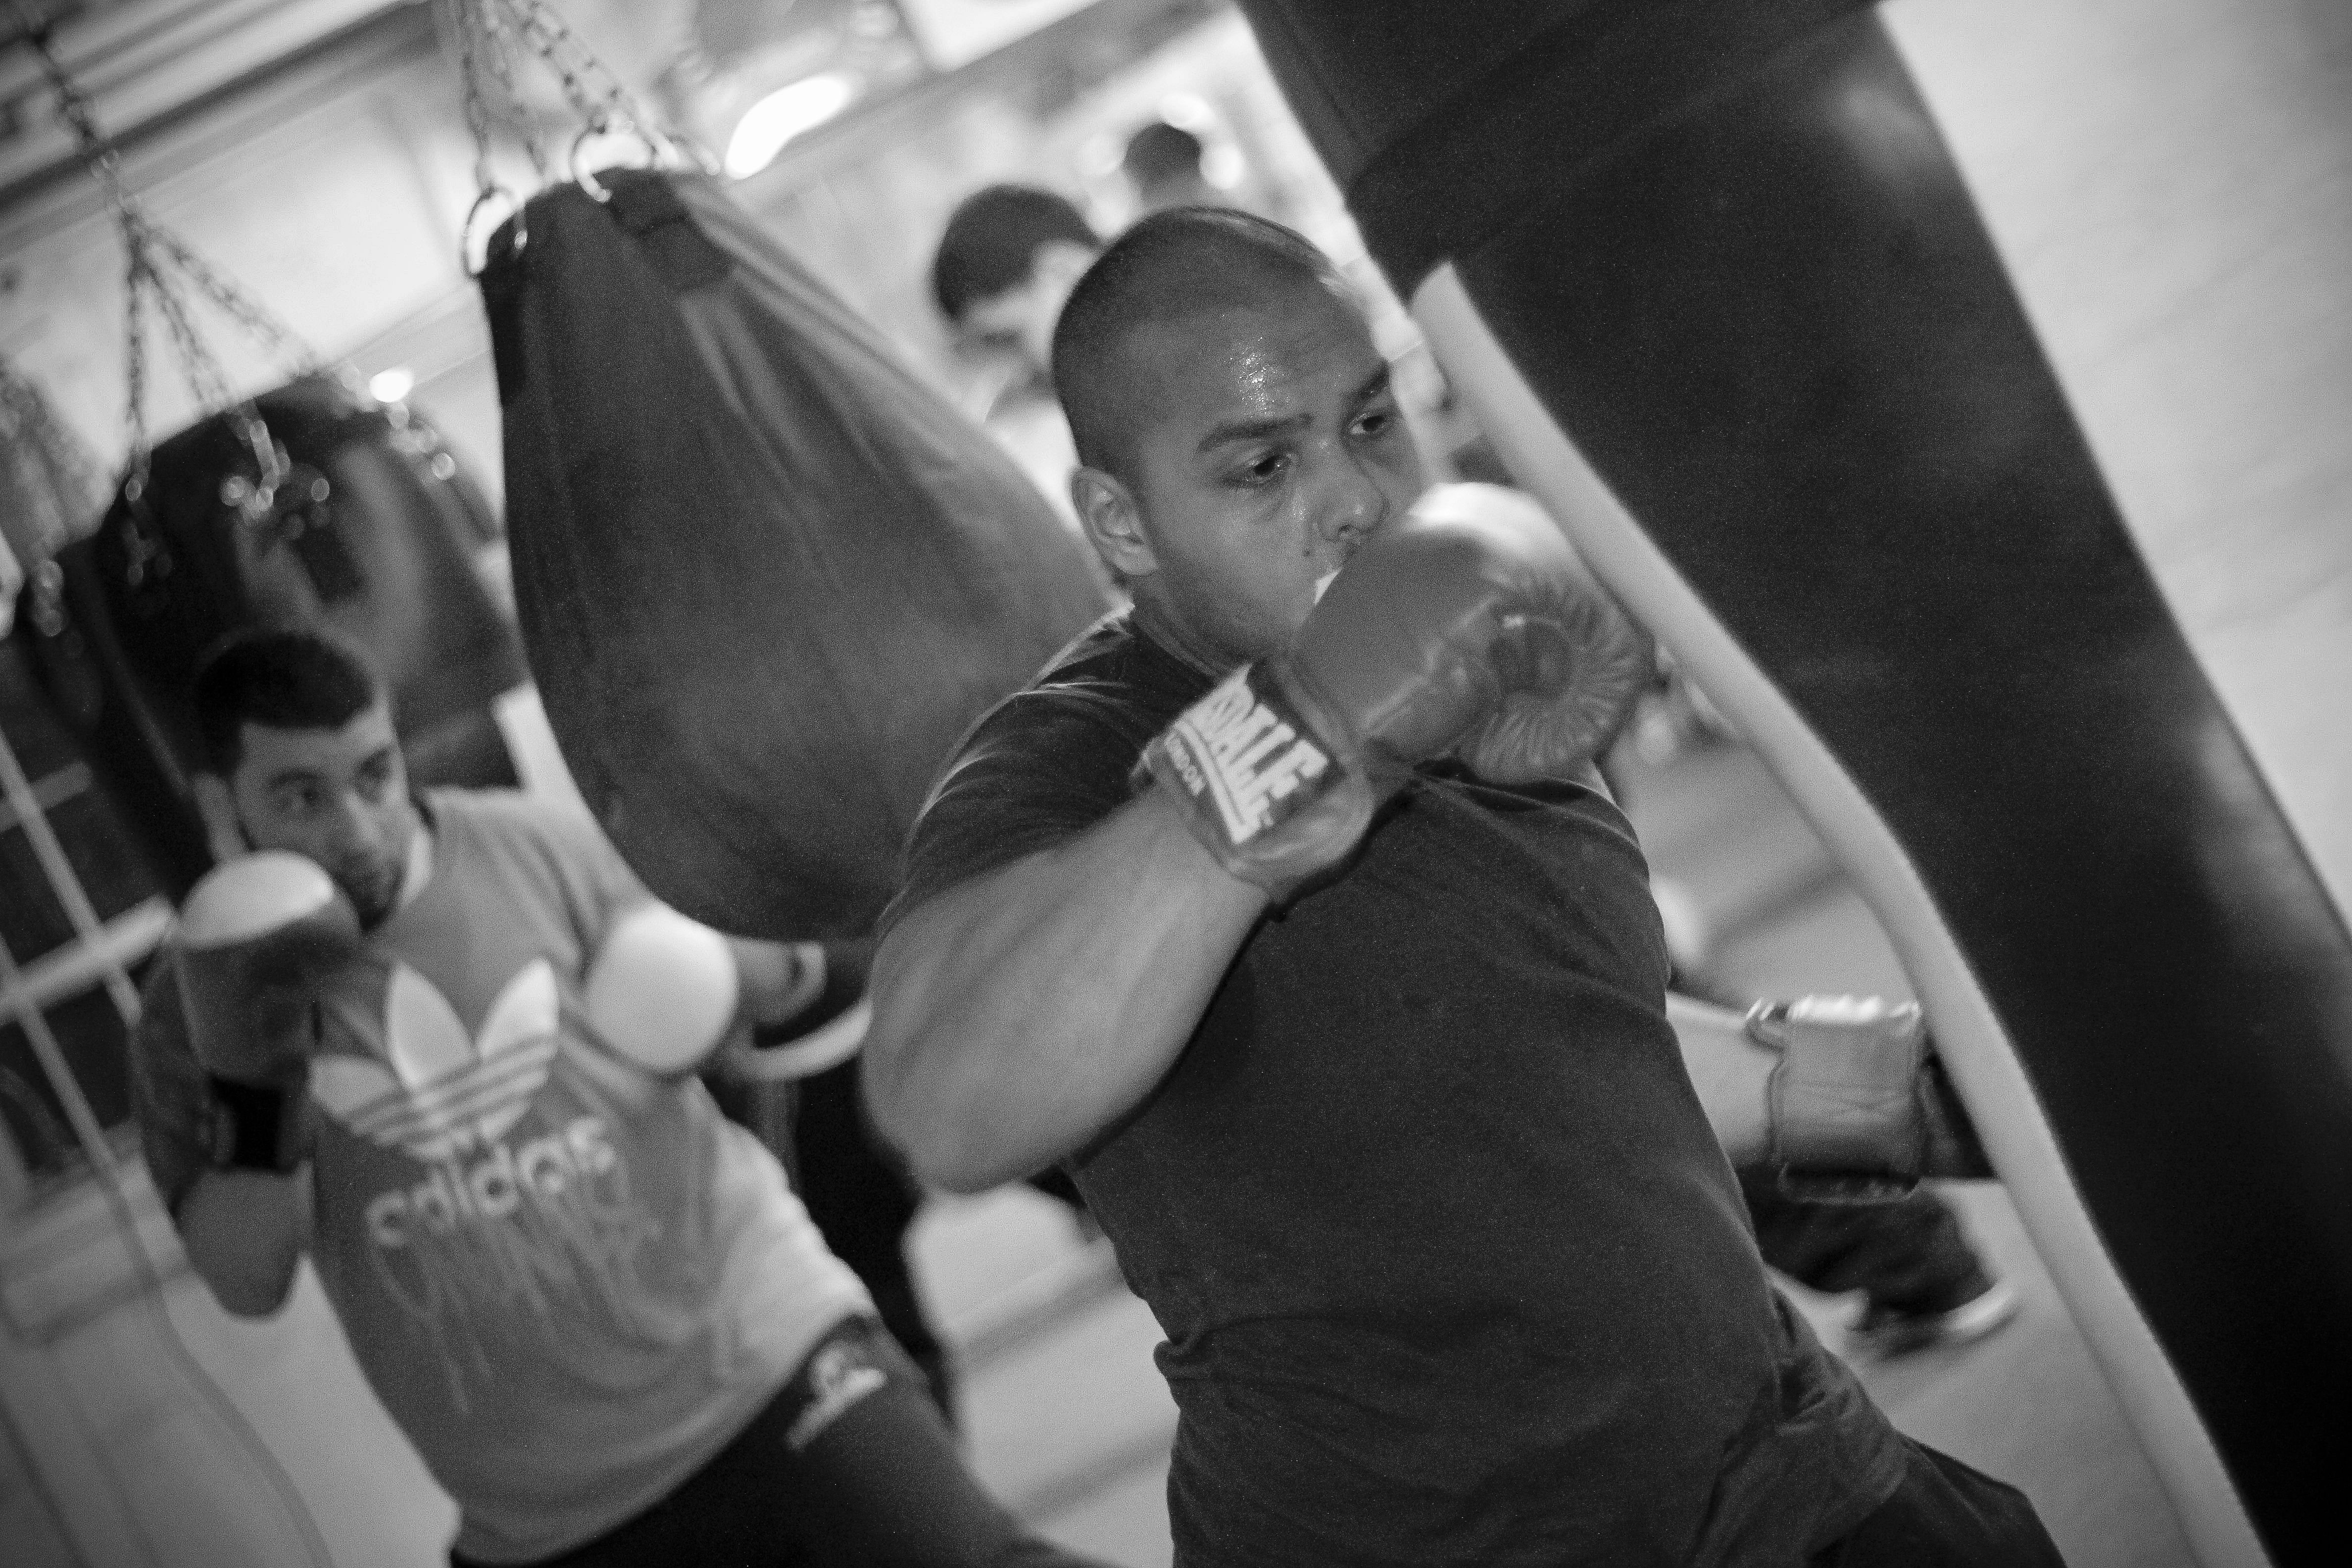 Think, amateur boxing coaching in iowa valuable